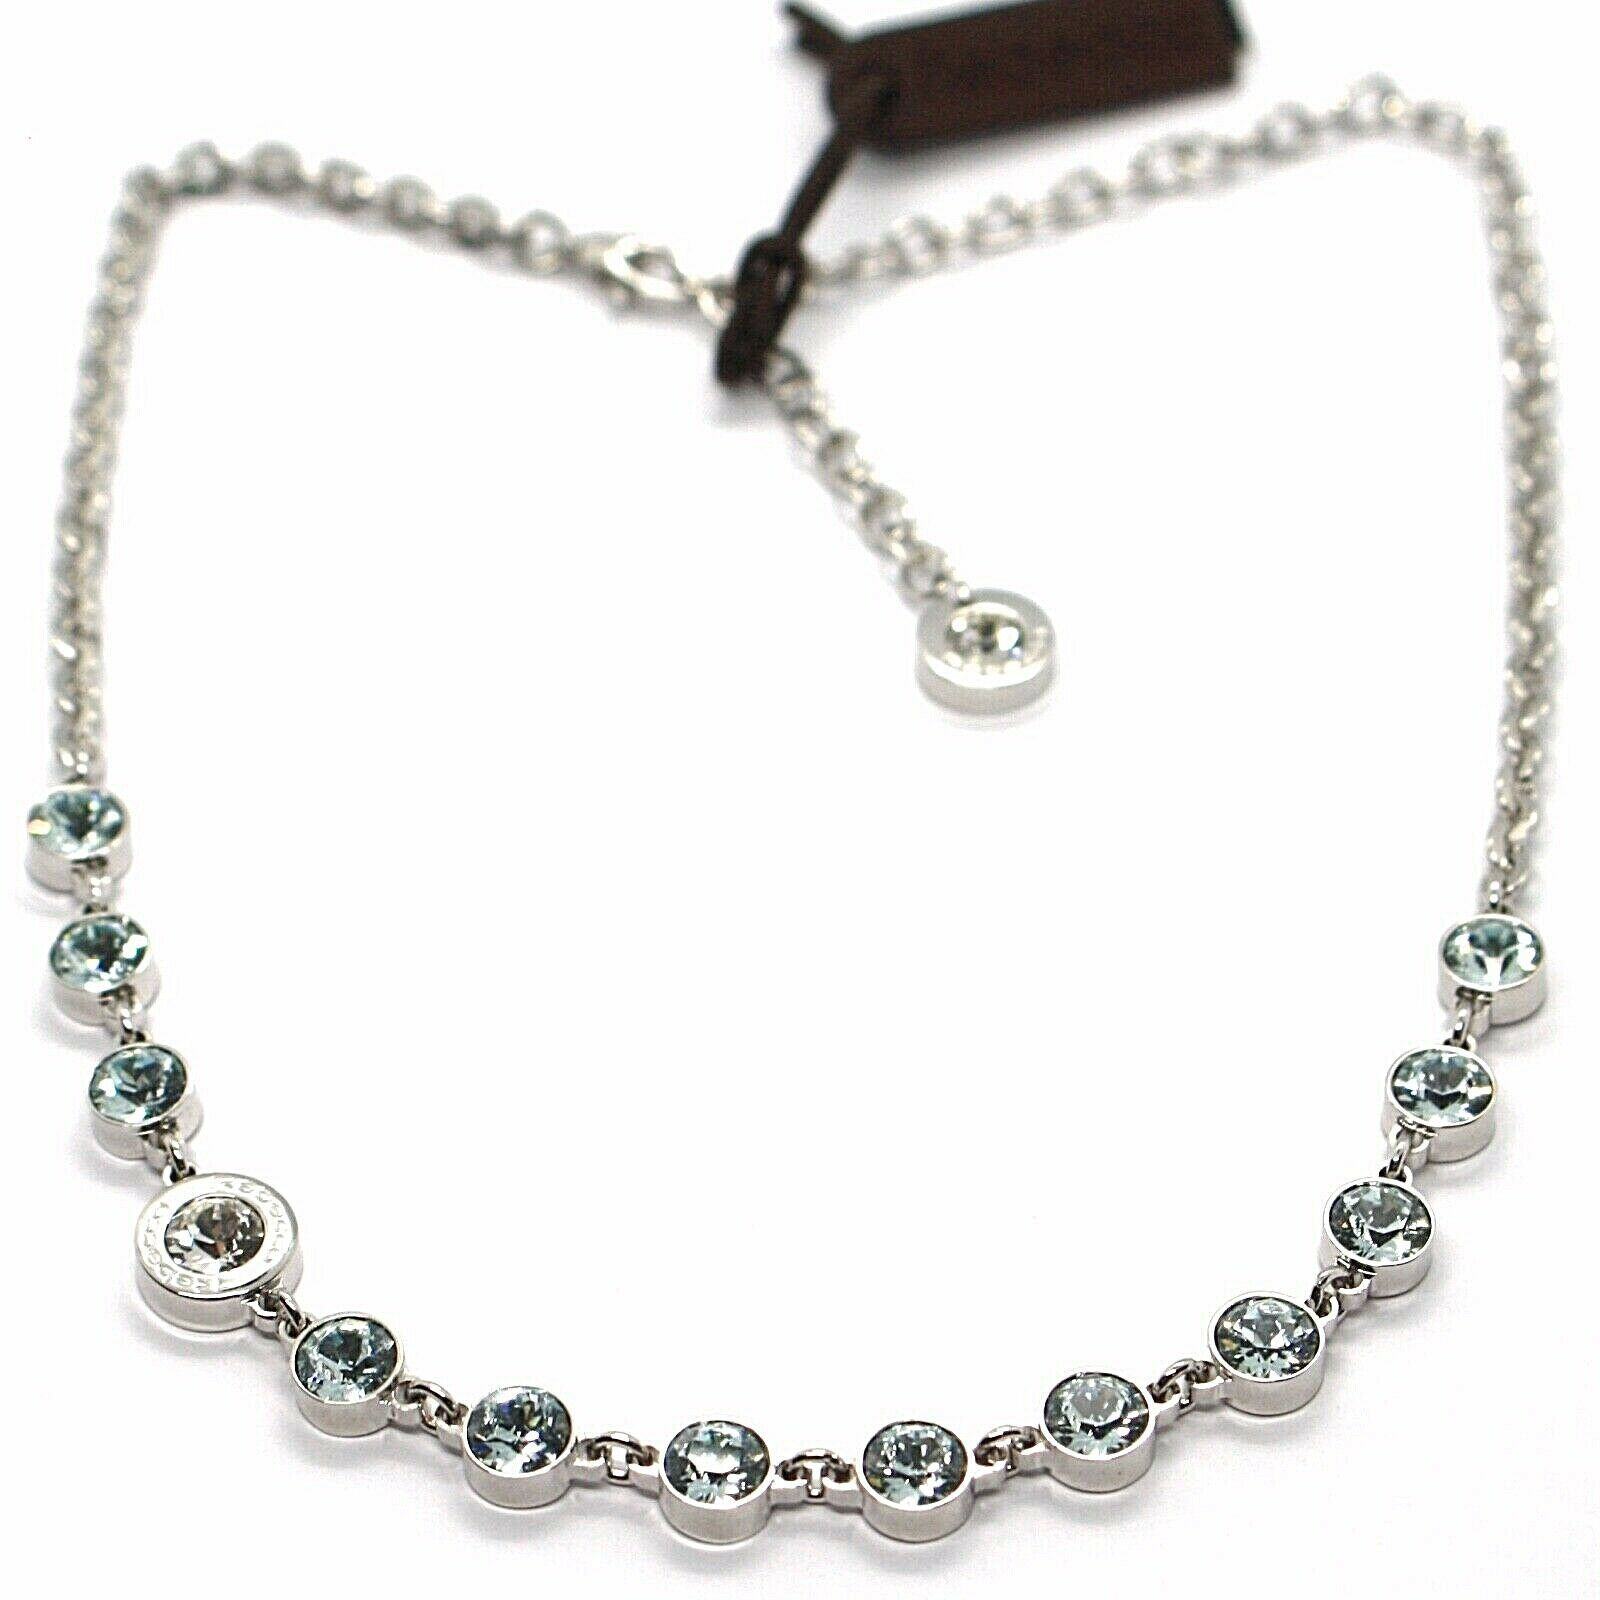 REBECCA BRONZE NECKLACE, TENNIS WITH LIGHT BLUE CRYSTALS, BPBKBL54 ITALY MADE